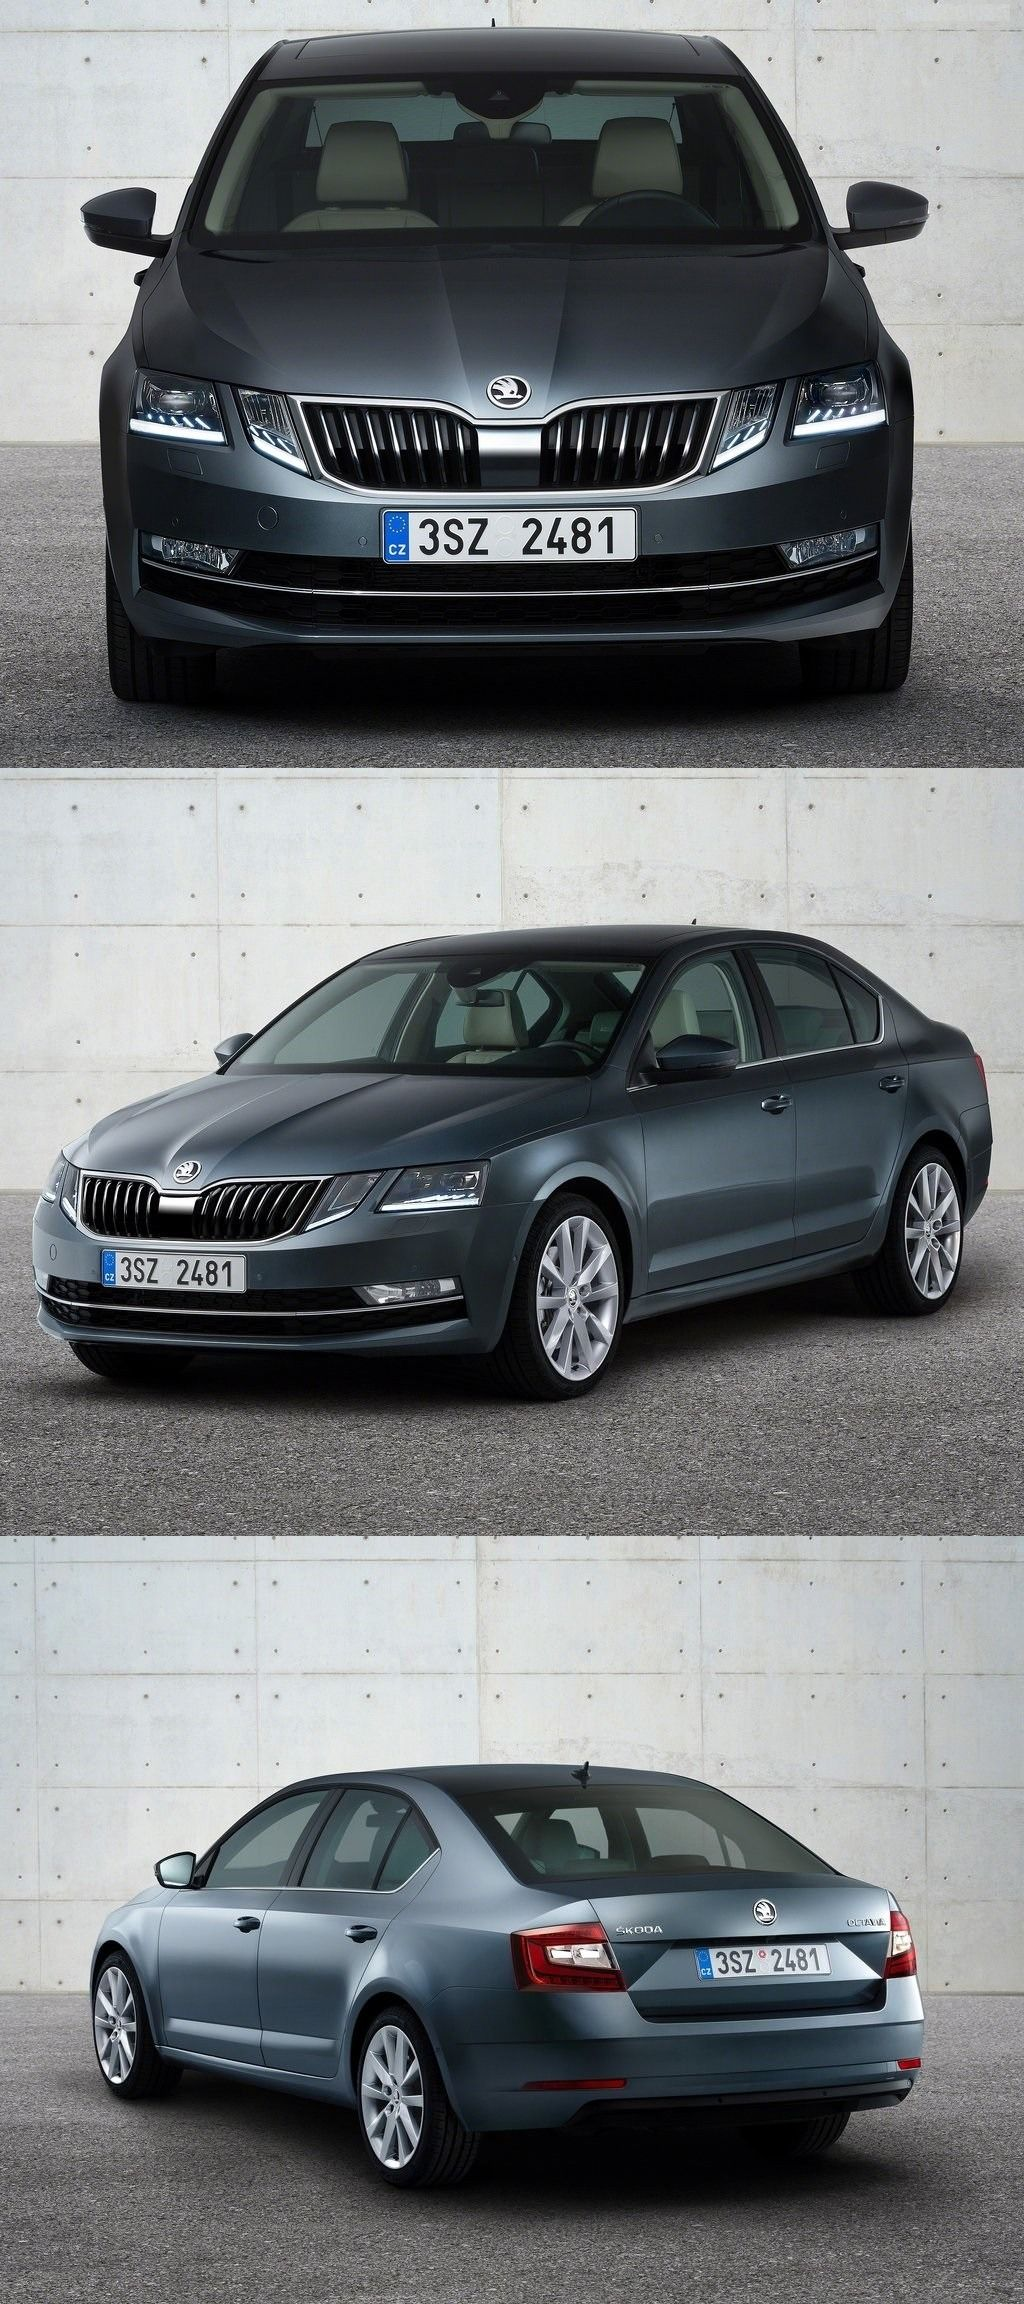 2017 Skoda Octavia Launched In India Priced At Inr 15 49 405 Vw